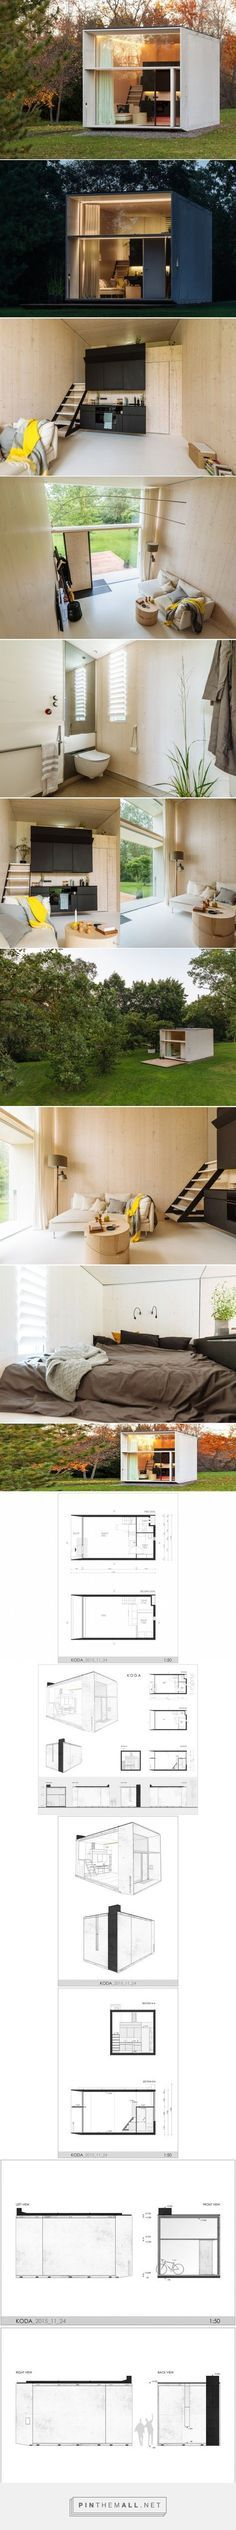 39 best My Home images on Pinterest | Shipping containers, Tiny ...